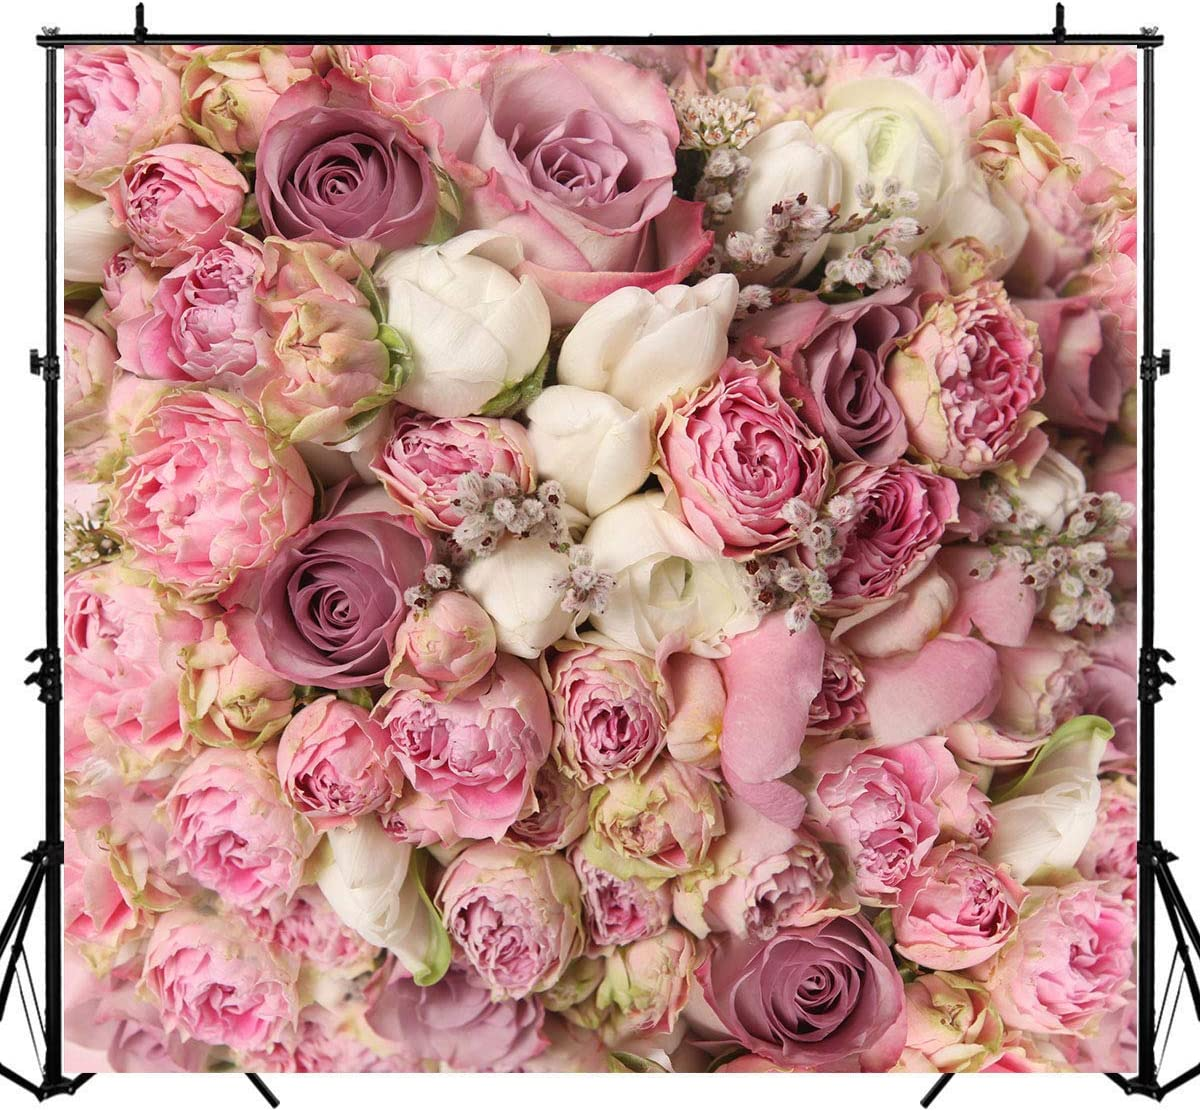 8x12 FT Flowers Vinyl Photography Backdrop,Bridal Bouquets Pattern with Roses and Freesia Romantic Victorian Composition Background for Baby Birthday Party Wedding Graduation Home Decoration